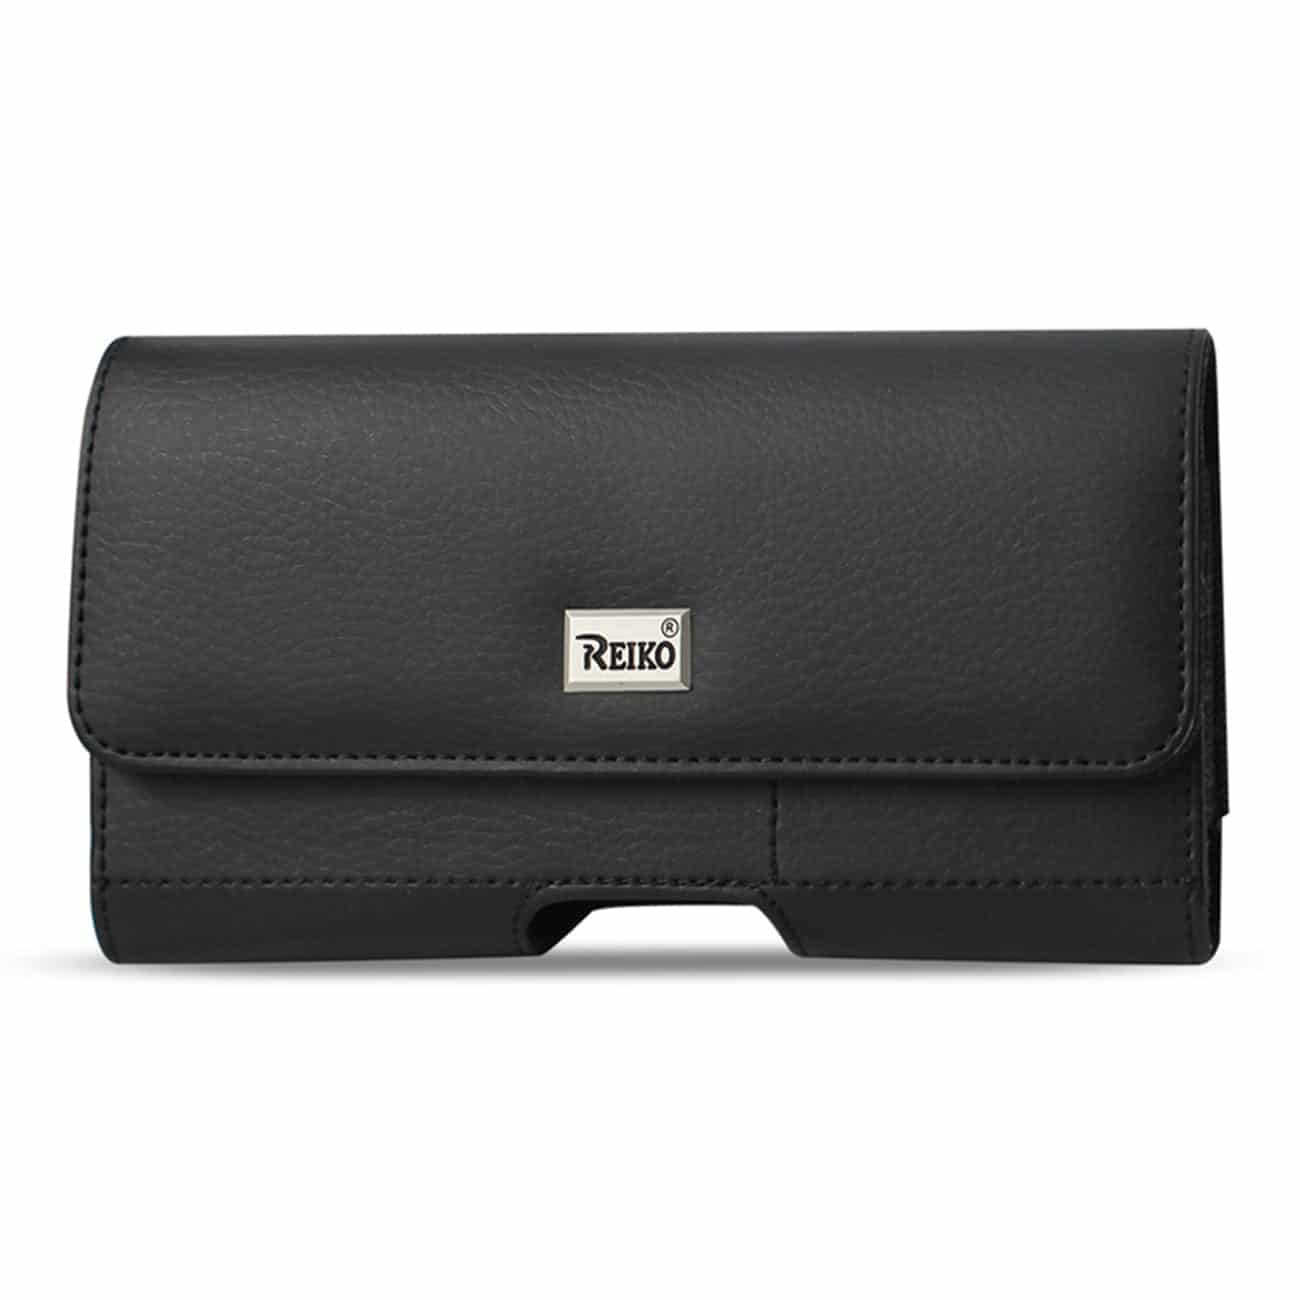 Horizontal Leather Pouch With Card Holder In Black (7.0X3.9X0.7 Inches)